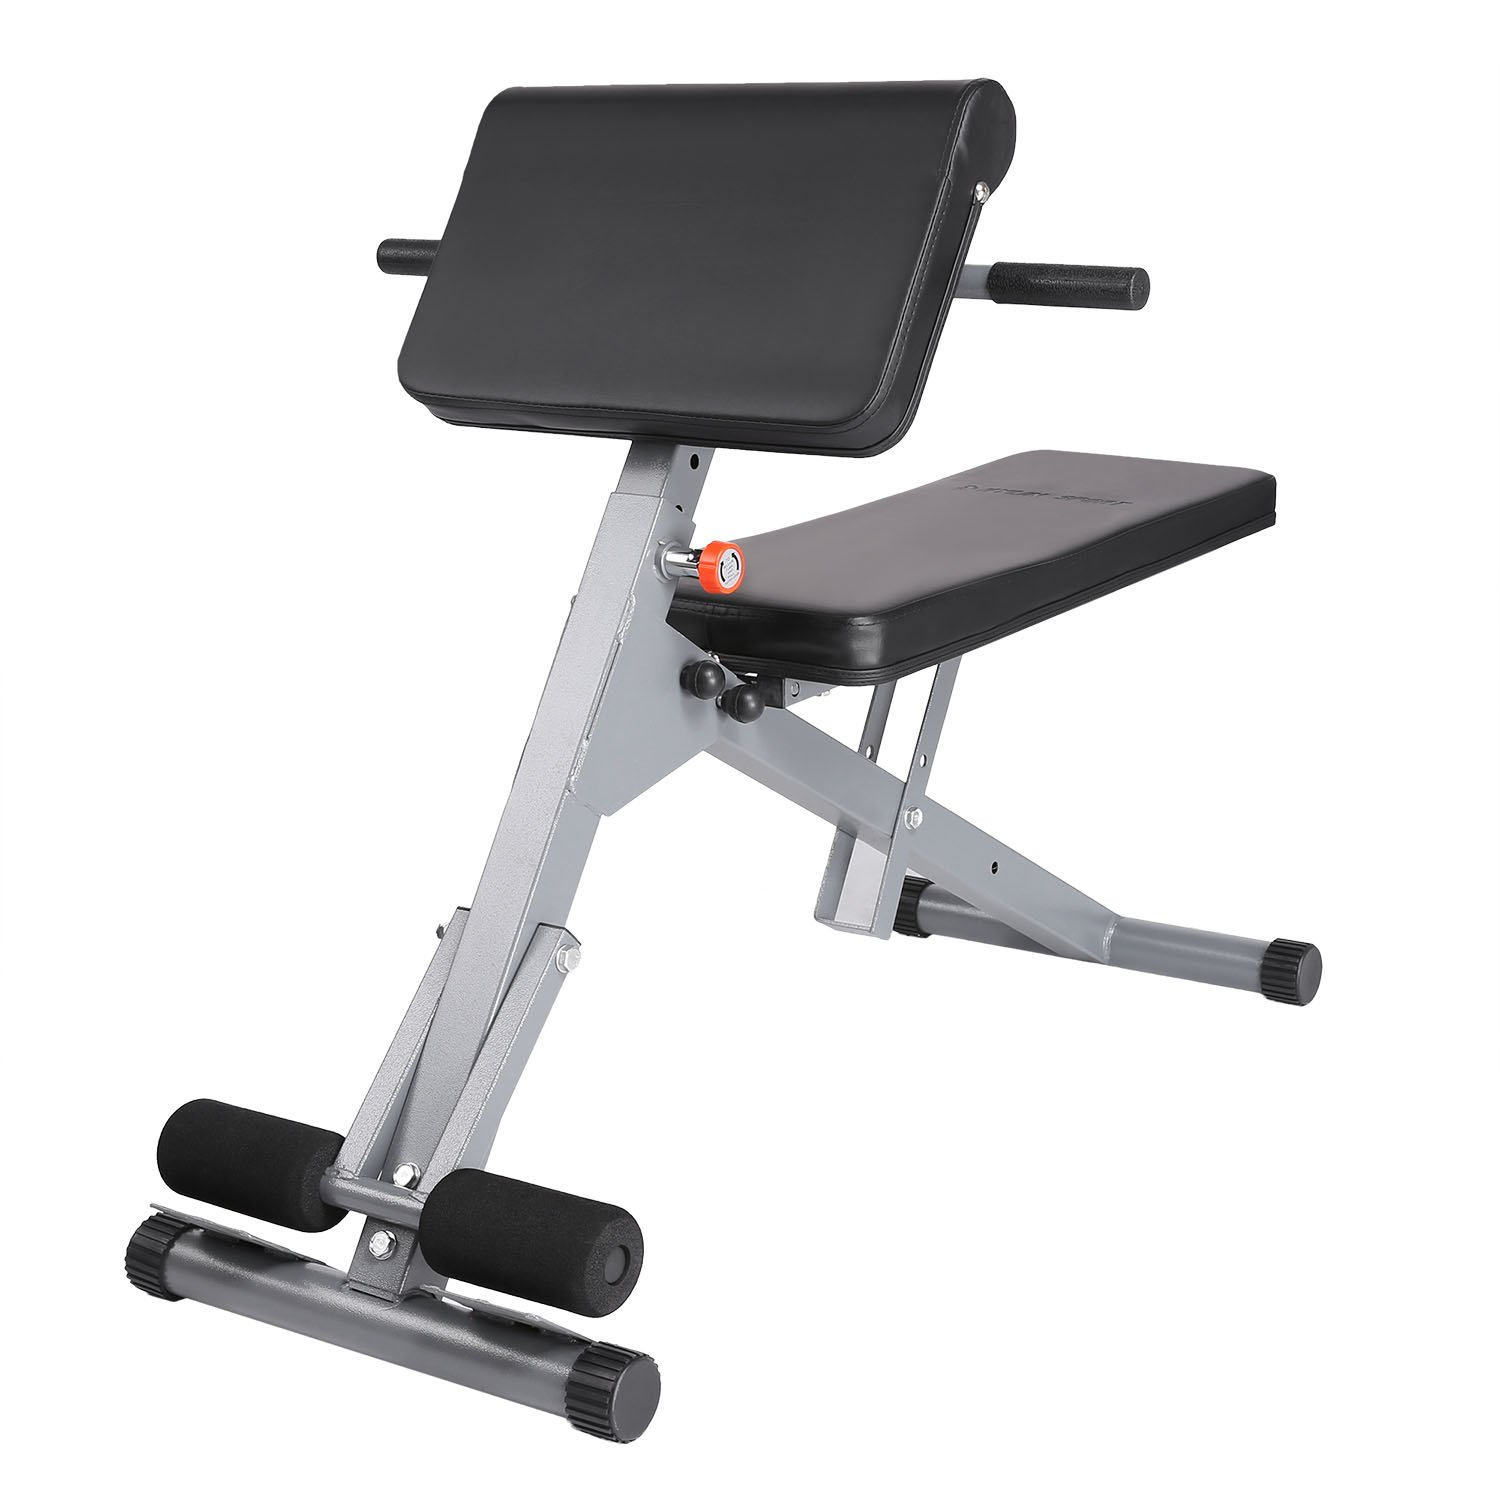 Kemanner Hyper Back Extension Roman Chair Multi-Function Adjustable Ab Bench with Preacher Curl (US STOCK)